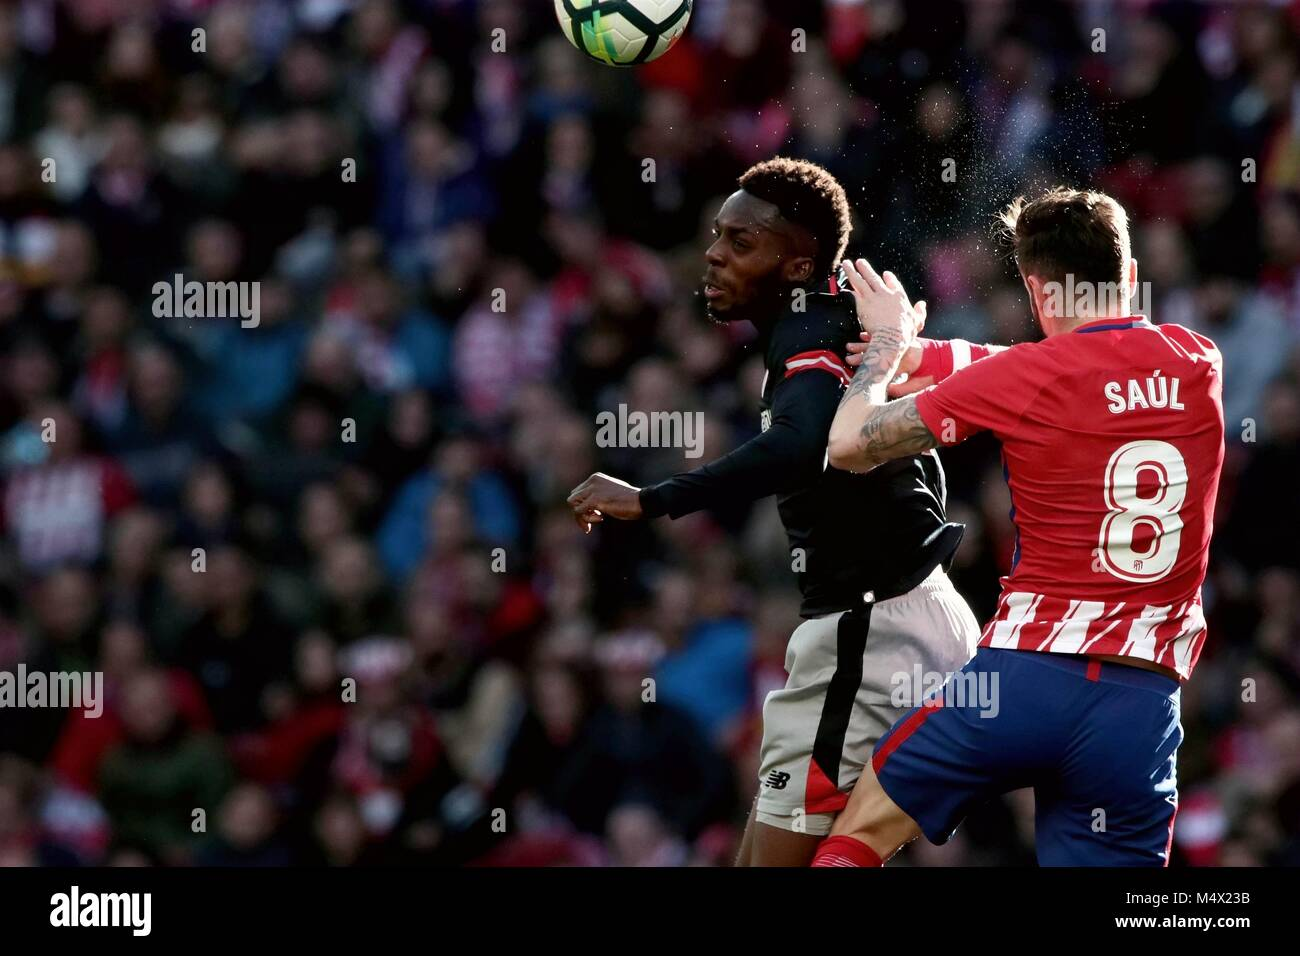 Madrid, Spain. 18th Feb, 2018. Atletico Madrid's Saul Niguez (R) vies with Inaki Williams of Athletic Bilbao - Stock Image